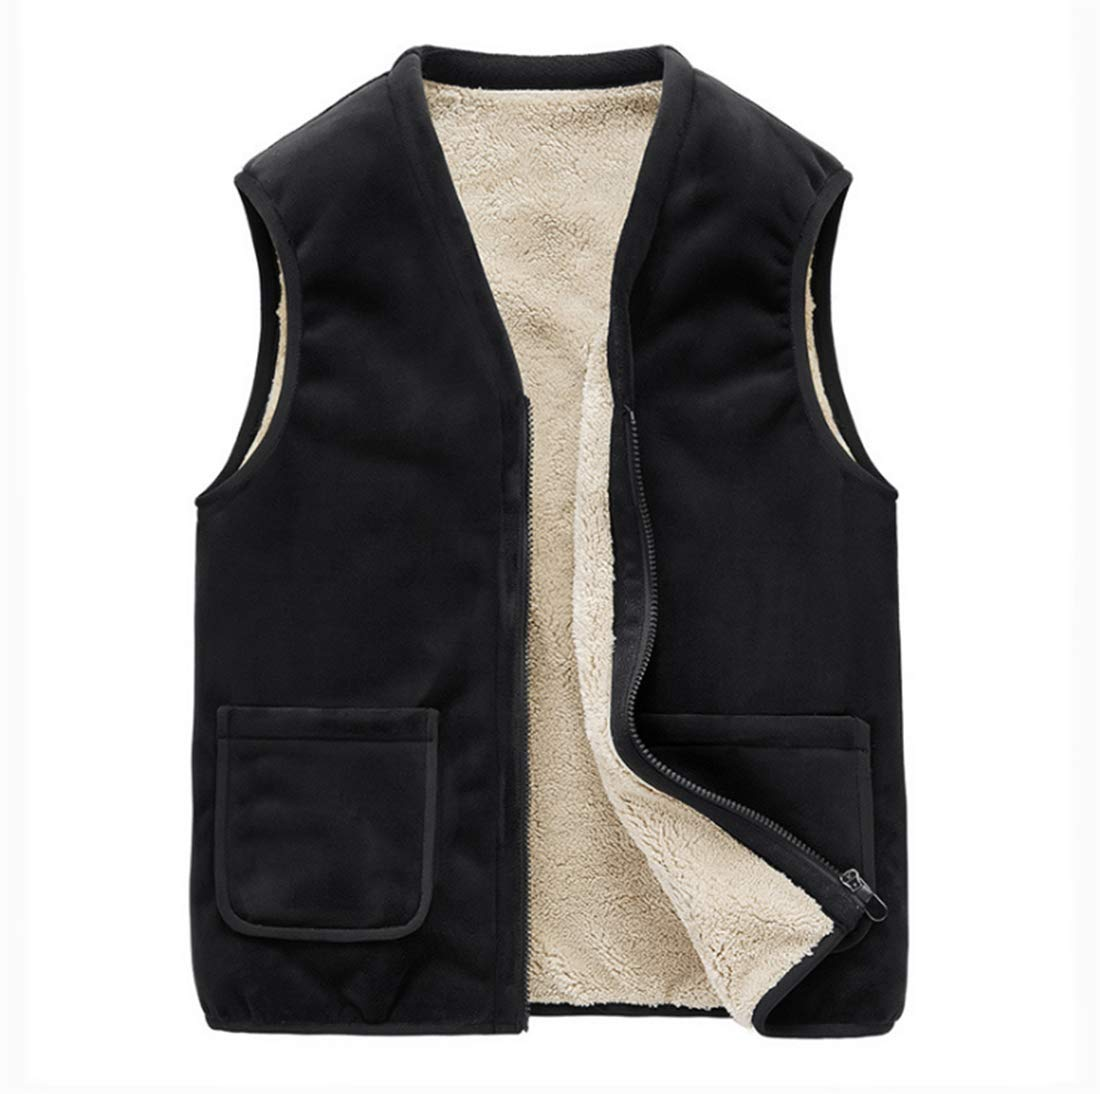 GL SUIT Mens Padded Gilet Lightweight Body Warmer Comfortable Vest Quick Drying Fleece Lined Winter Waistcoat for Outdoor Sport Running Walking Travelling Hiking